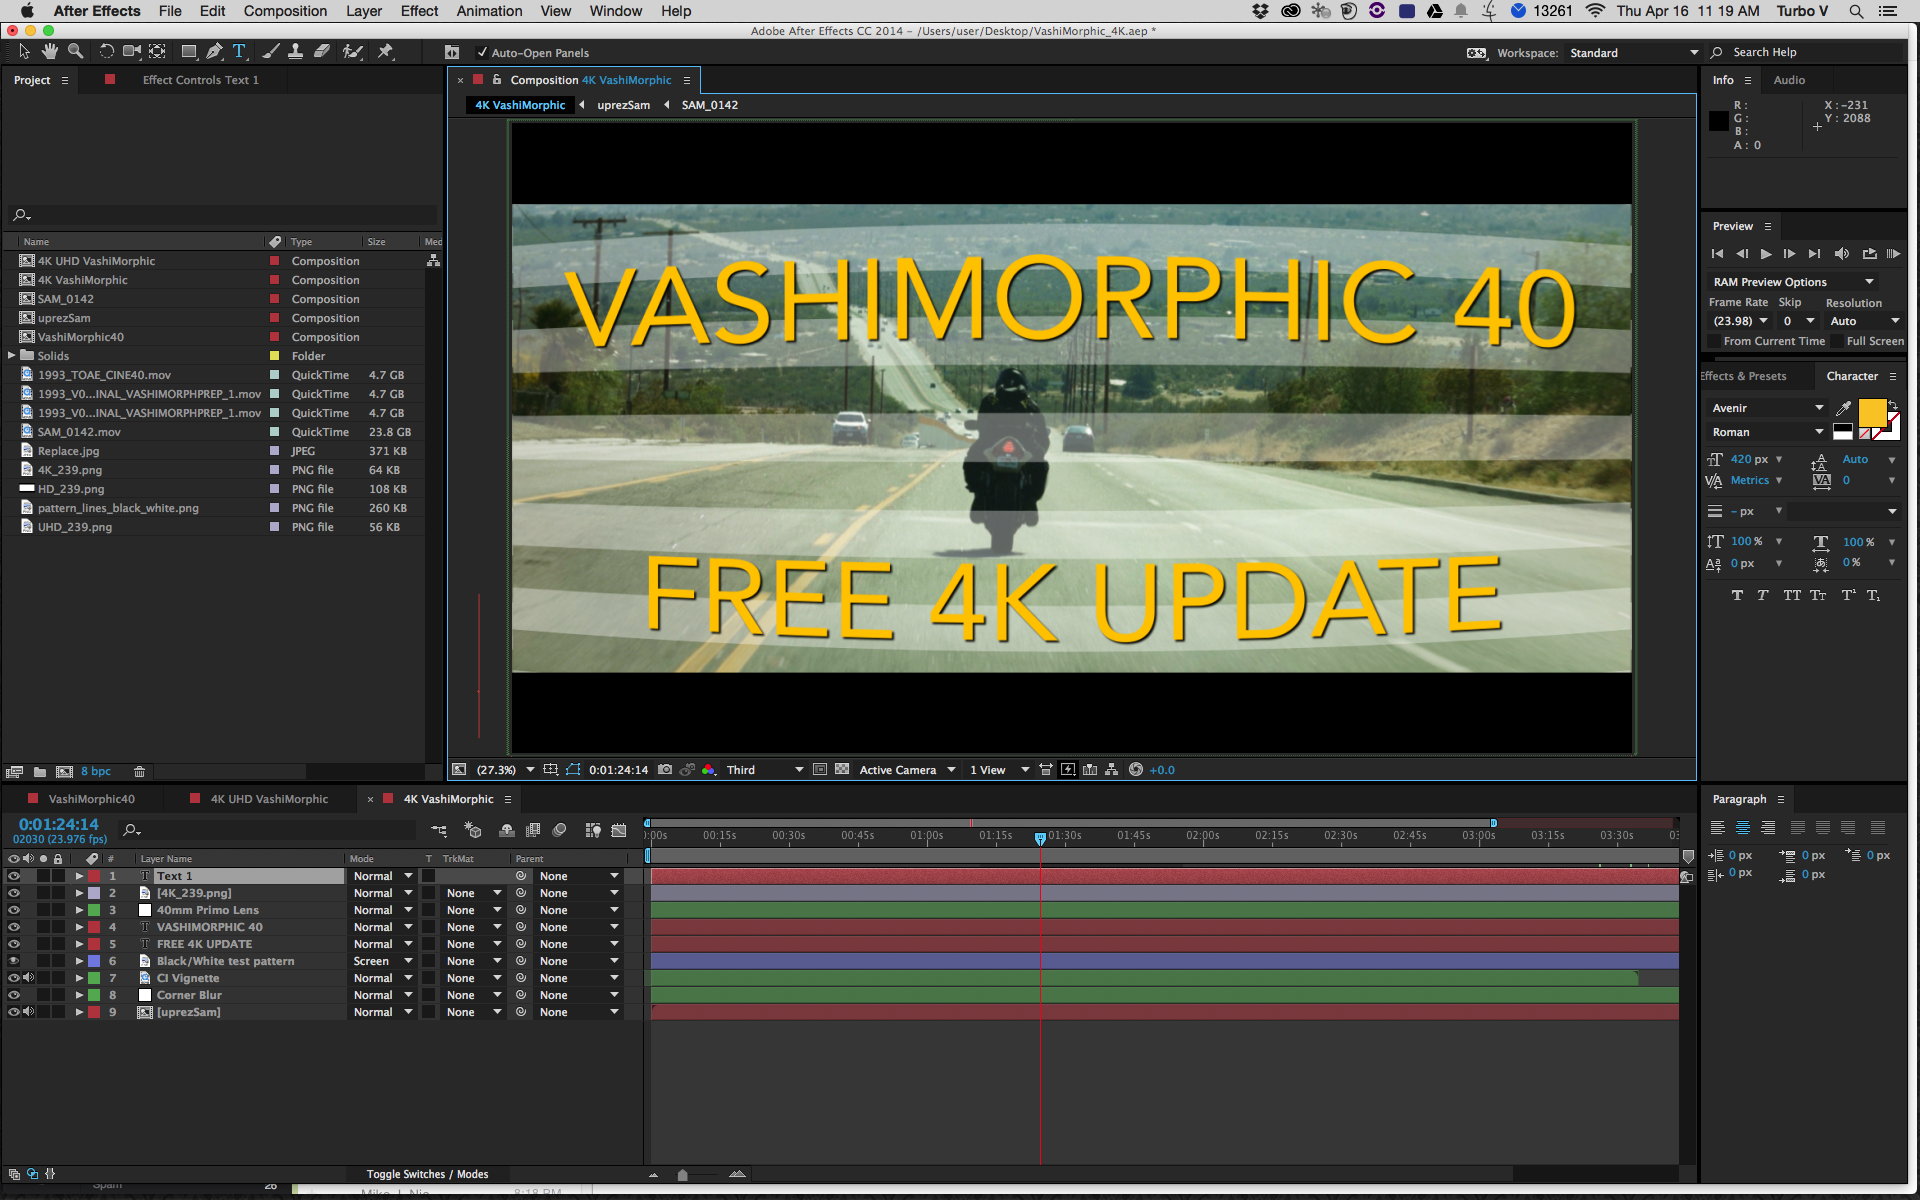 4K update for After Effects